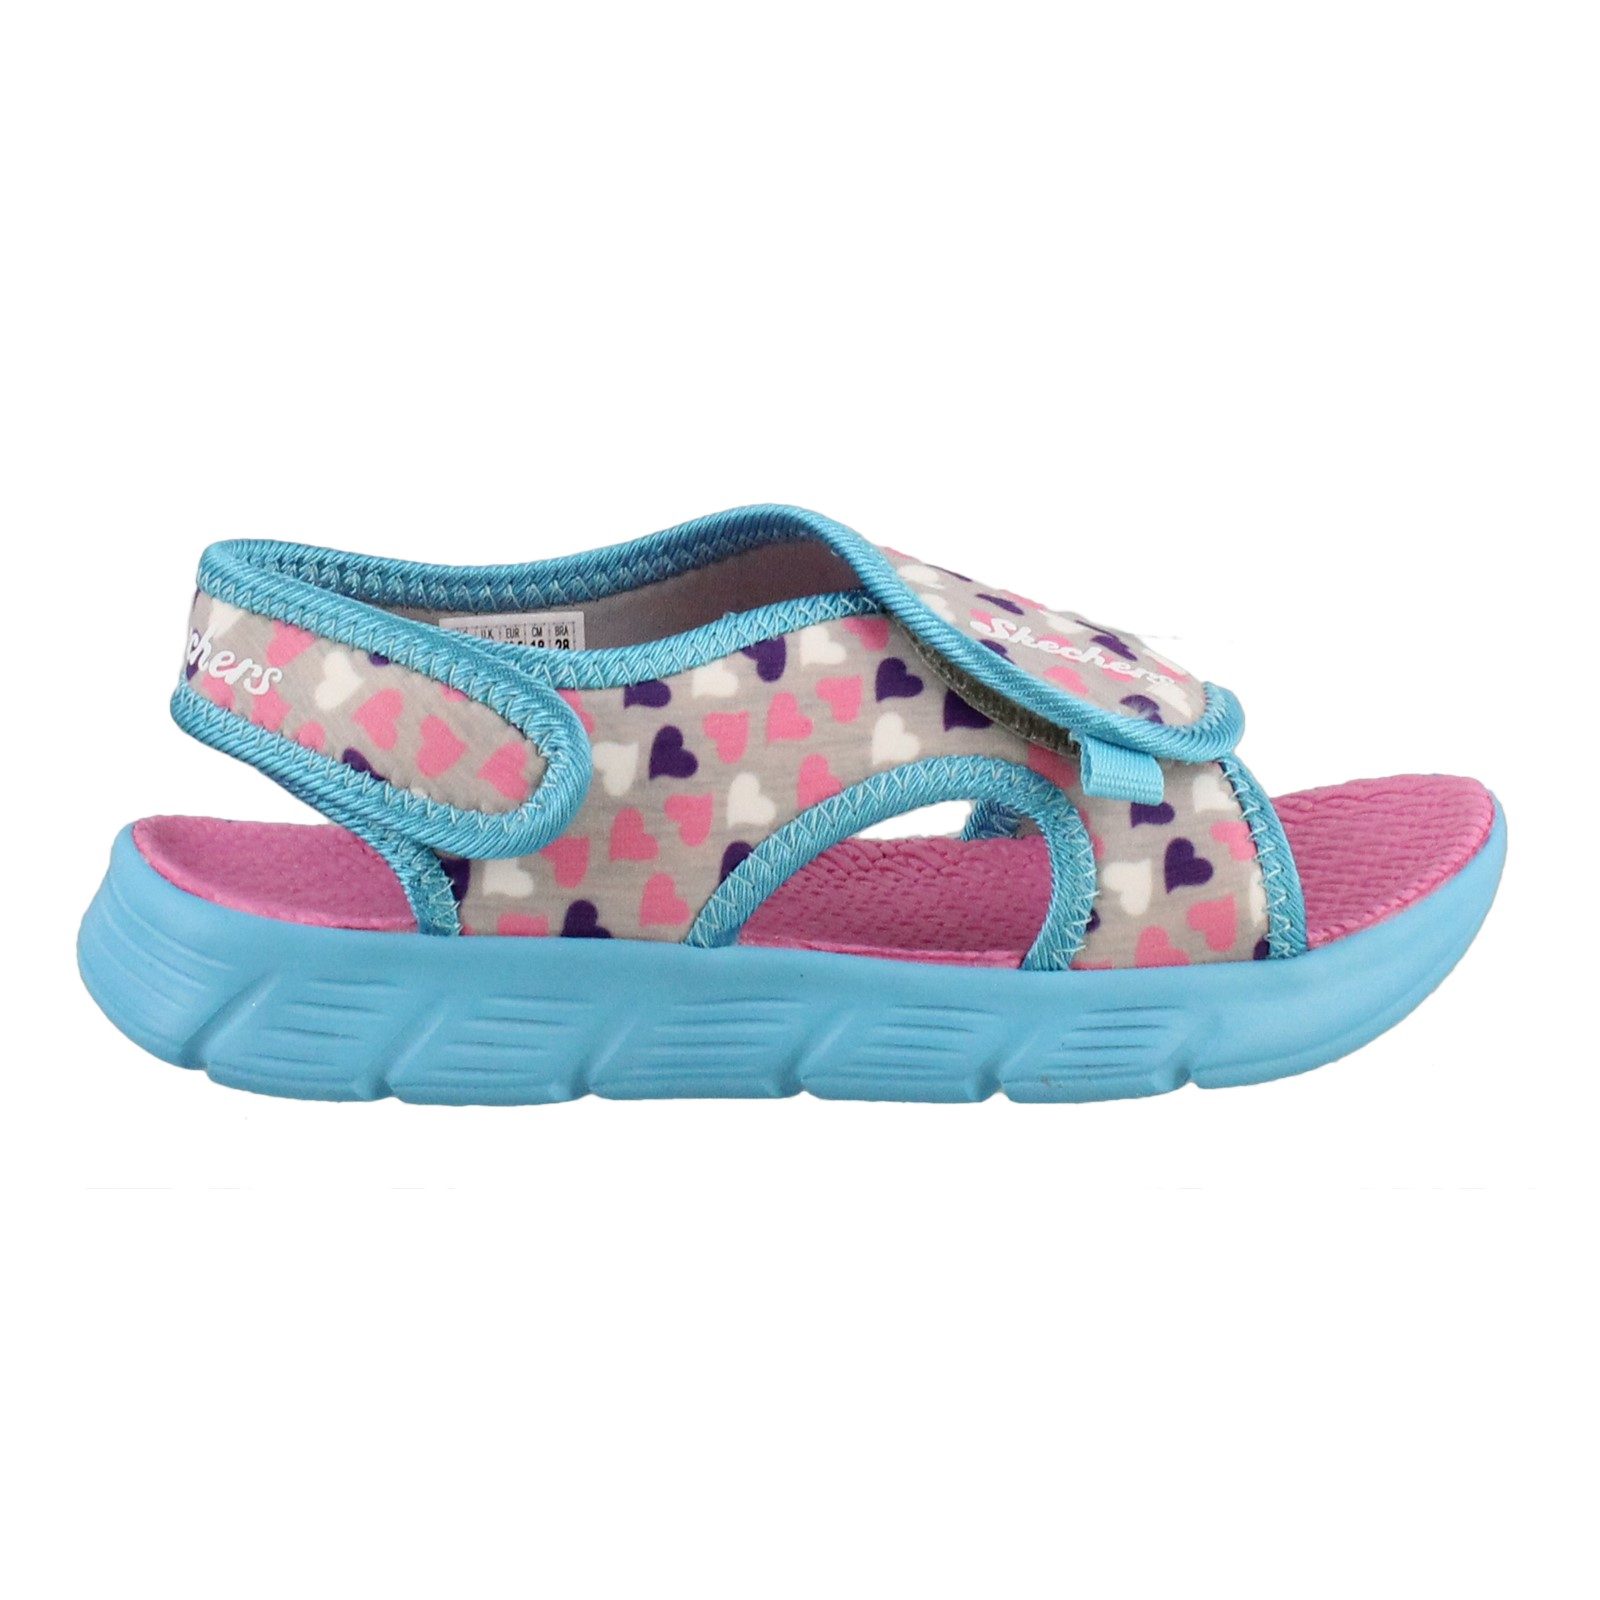 Girl's Skechers, C Flex Critics Sandals